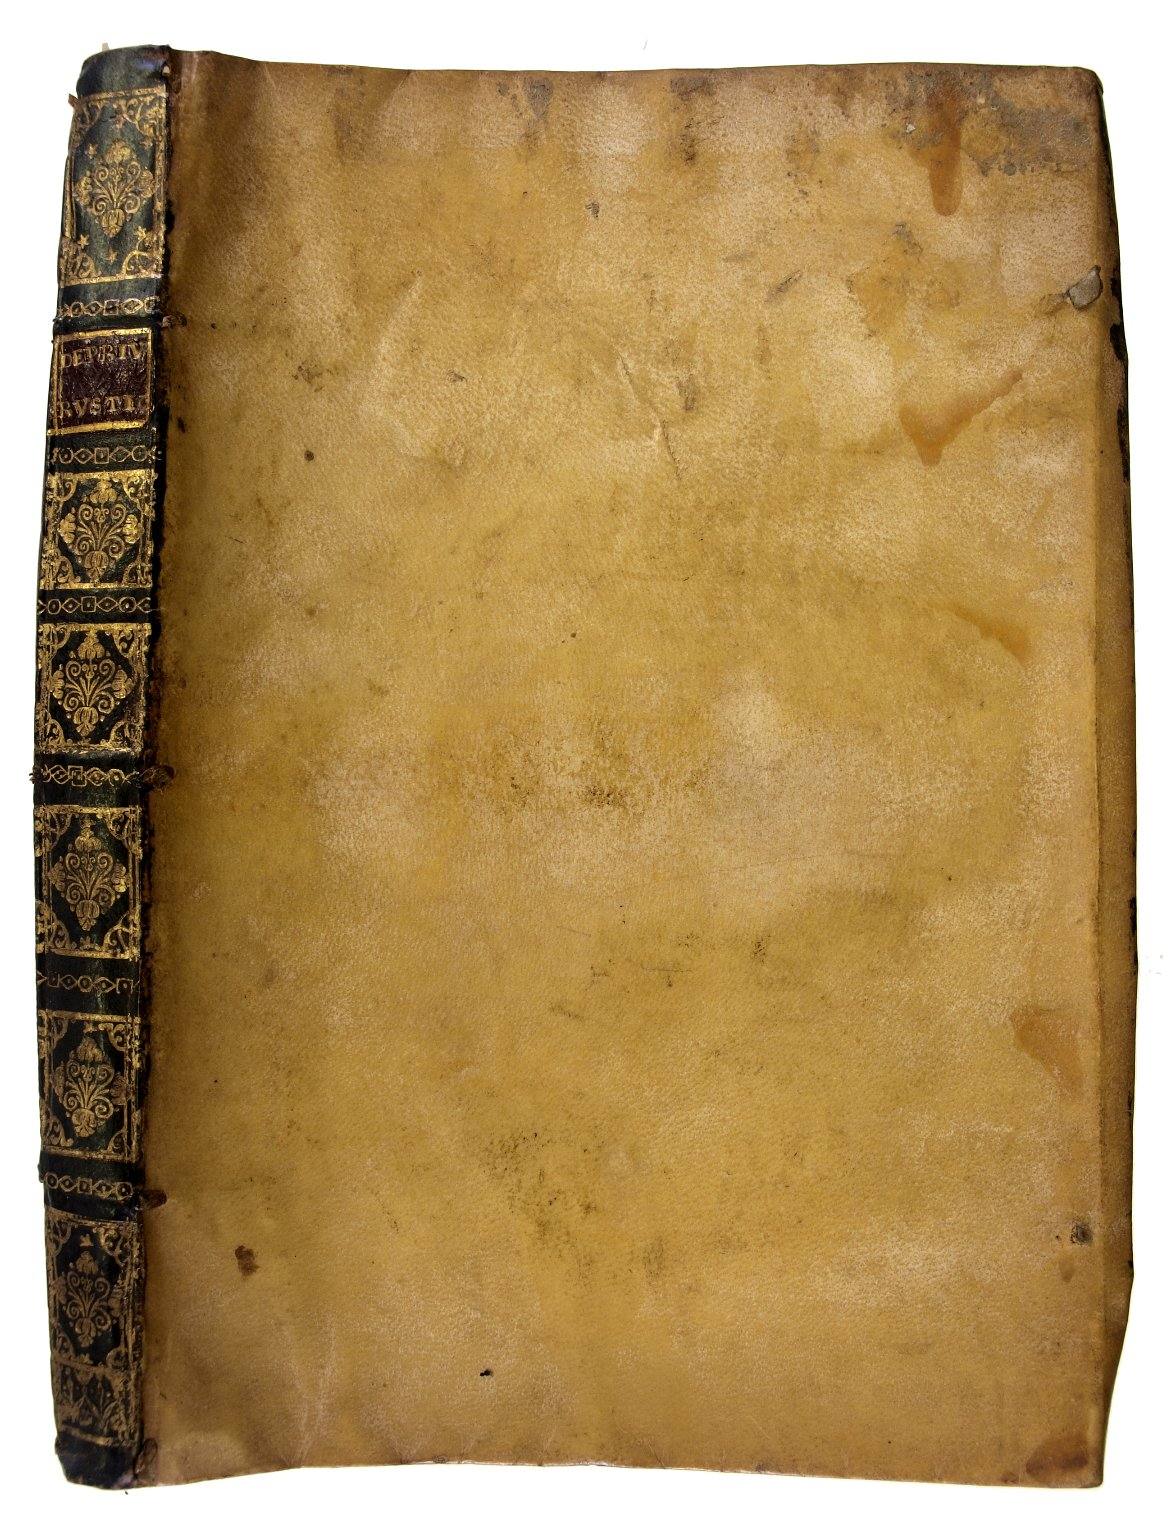 Front cover and spine, 178404.